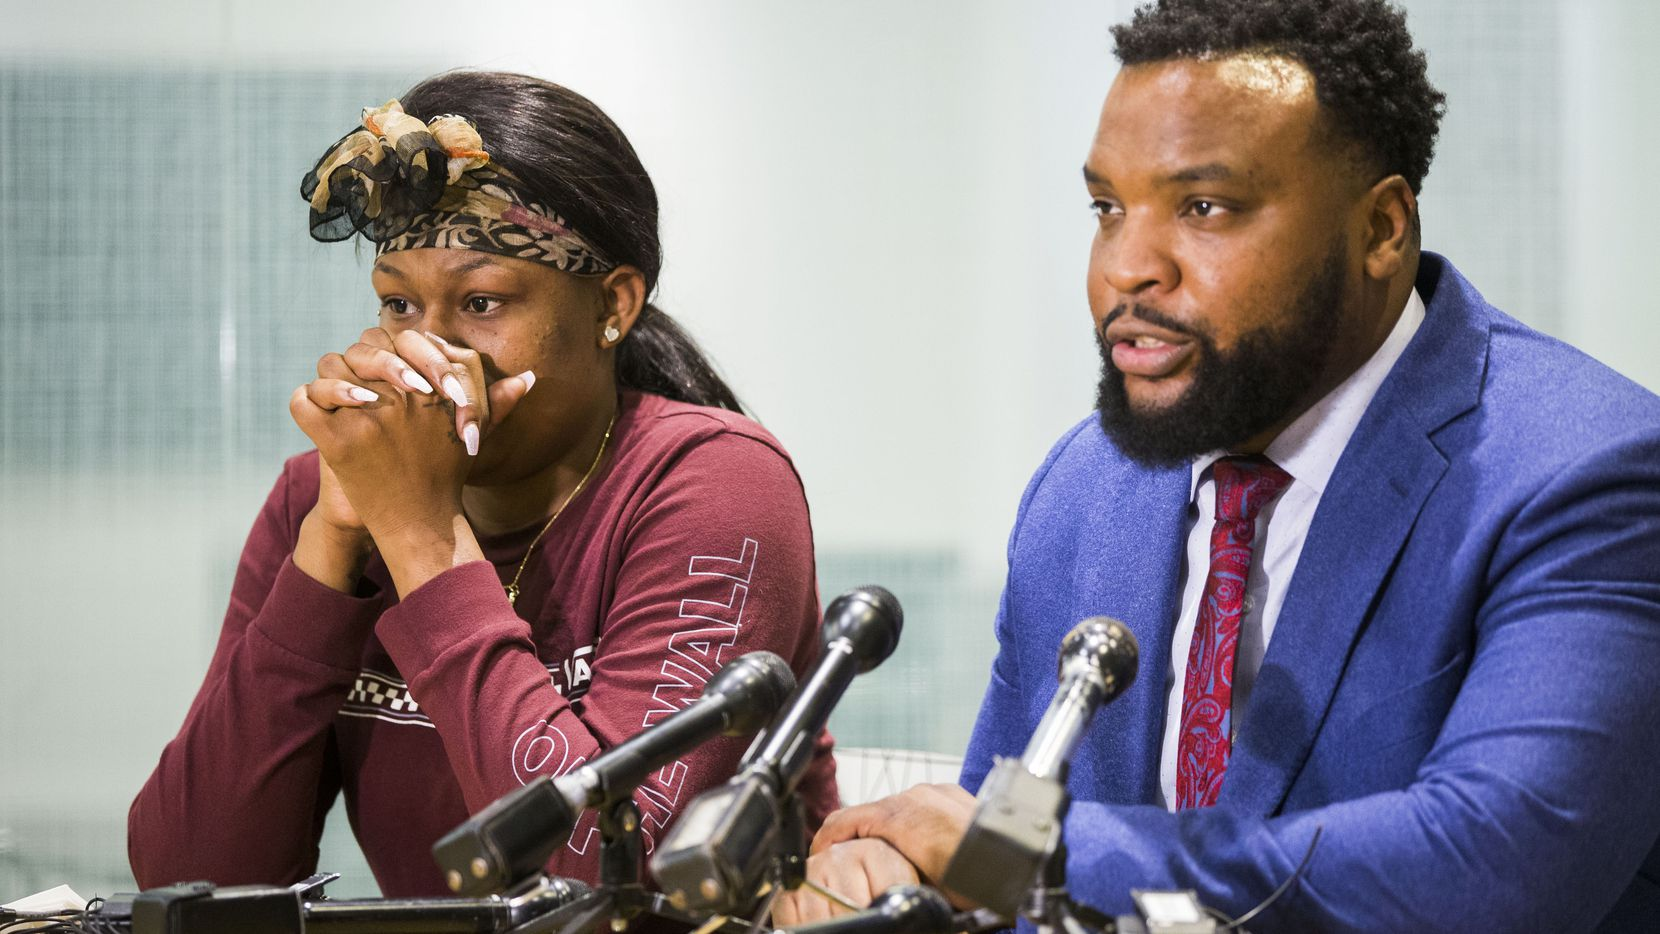 L'Daijohnique Lee and her lawyer, civil rights attorney Lee Merritt, spoke at a news conference in Dallas last week.